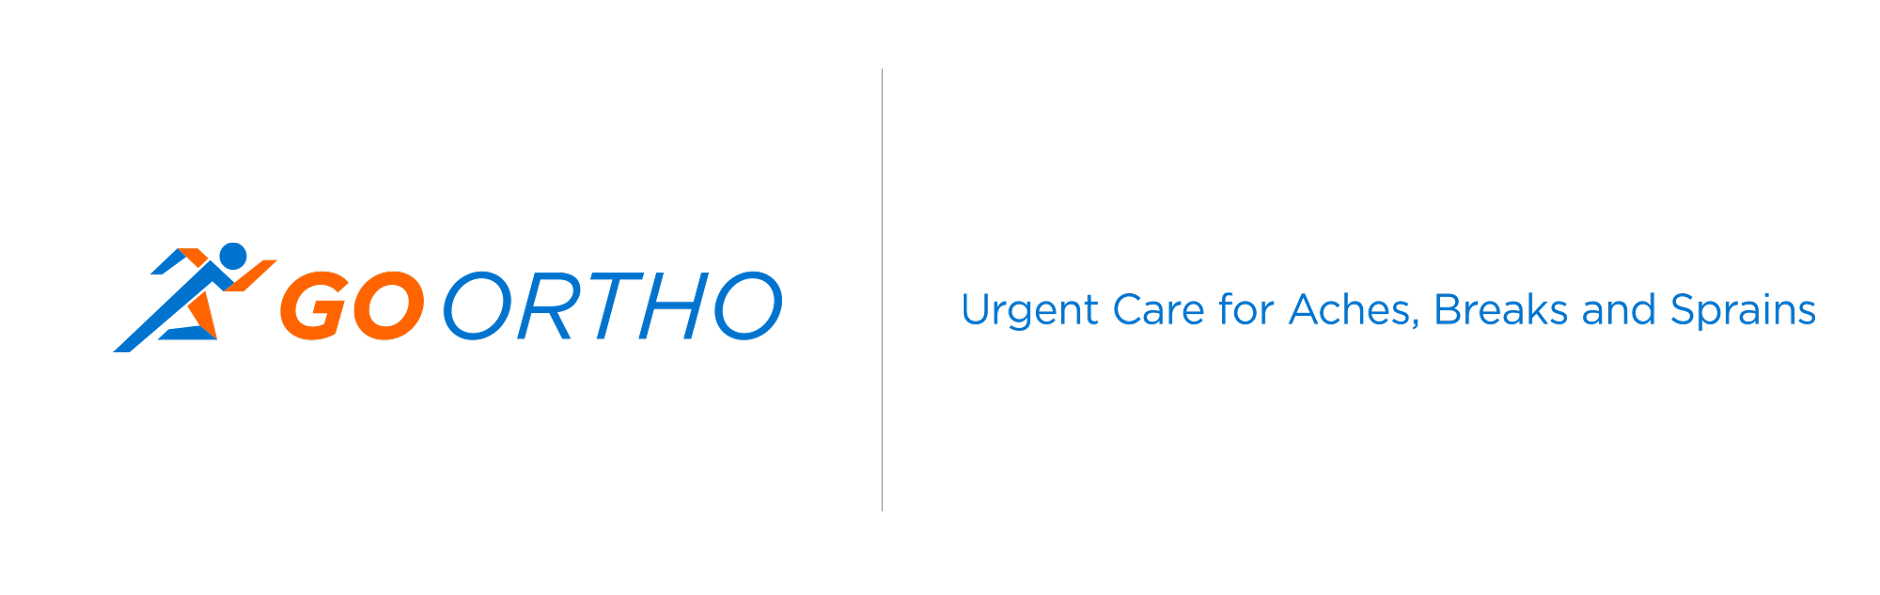 GO Ortho-Logo-and-Tagline | Health Care Branding